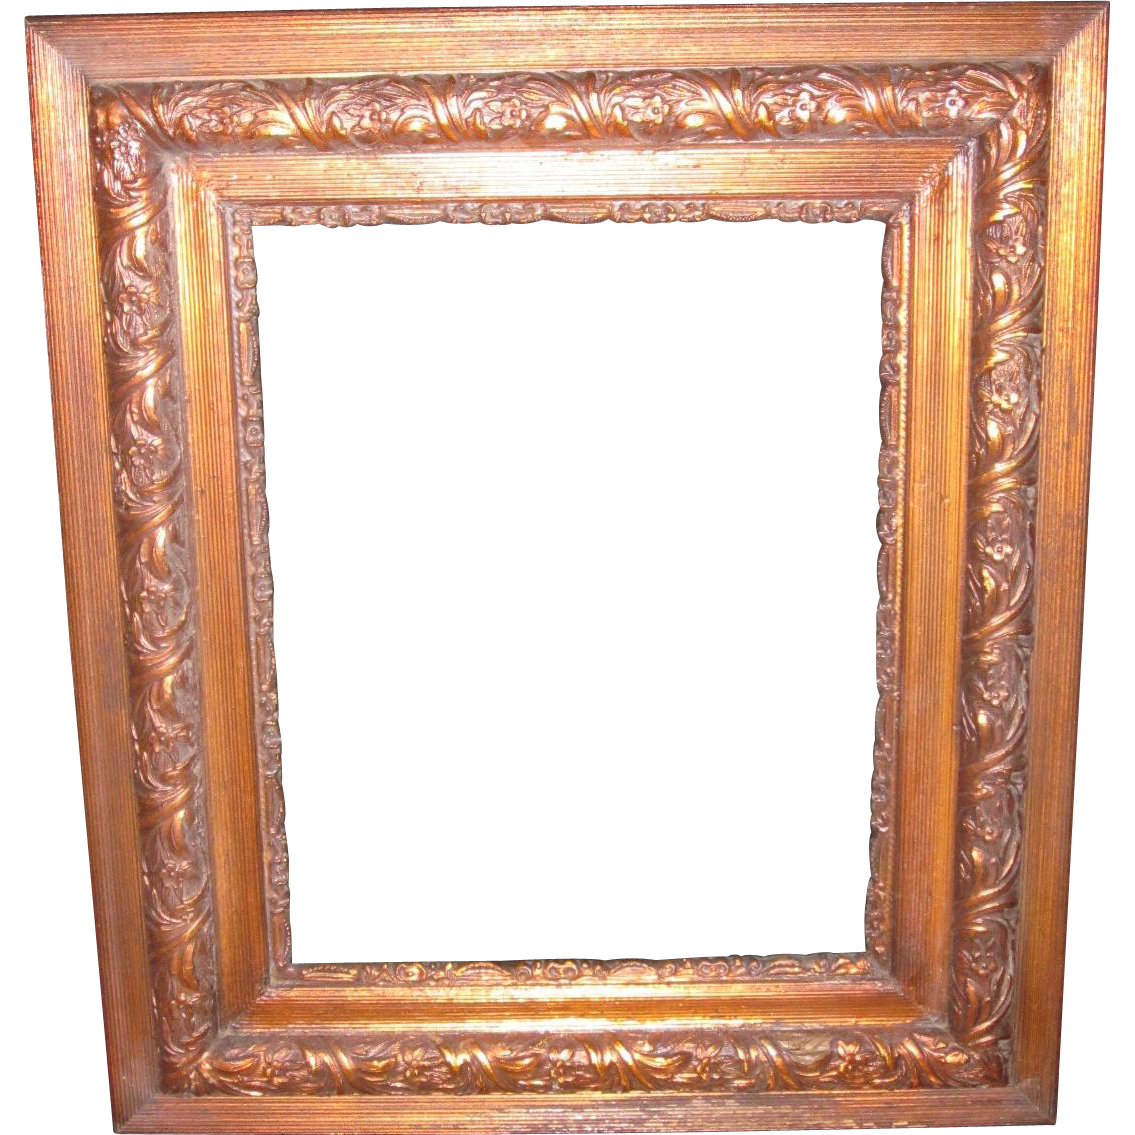 Antique Ornate Copper Tinted Wood Picture Frame : The Lazy Dog ...